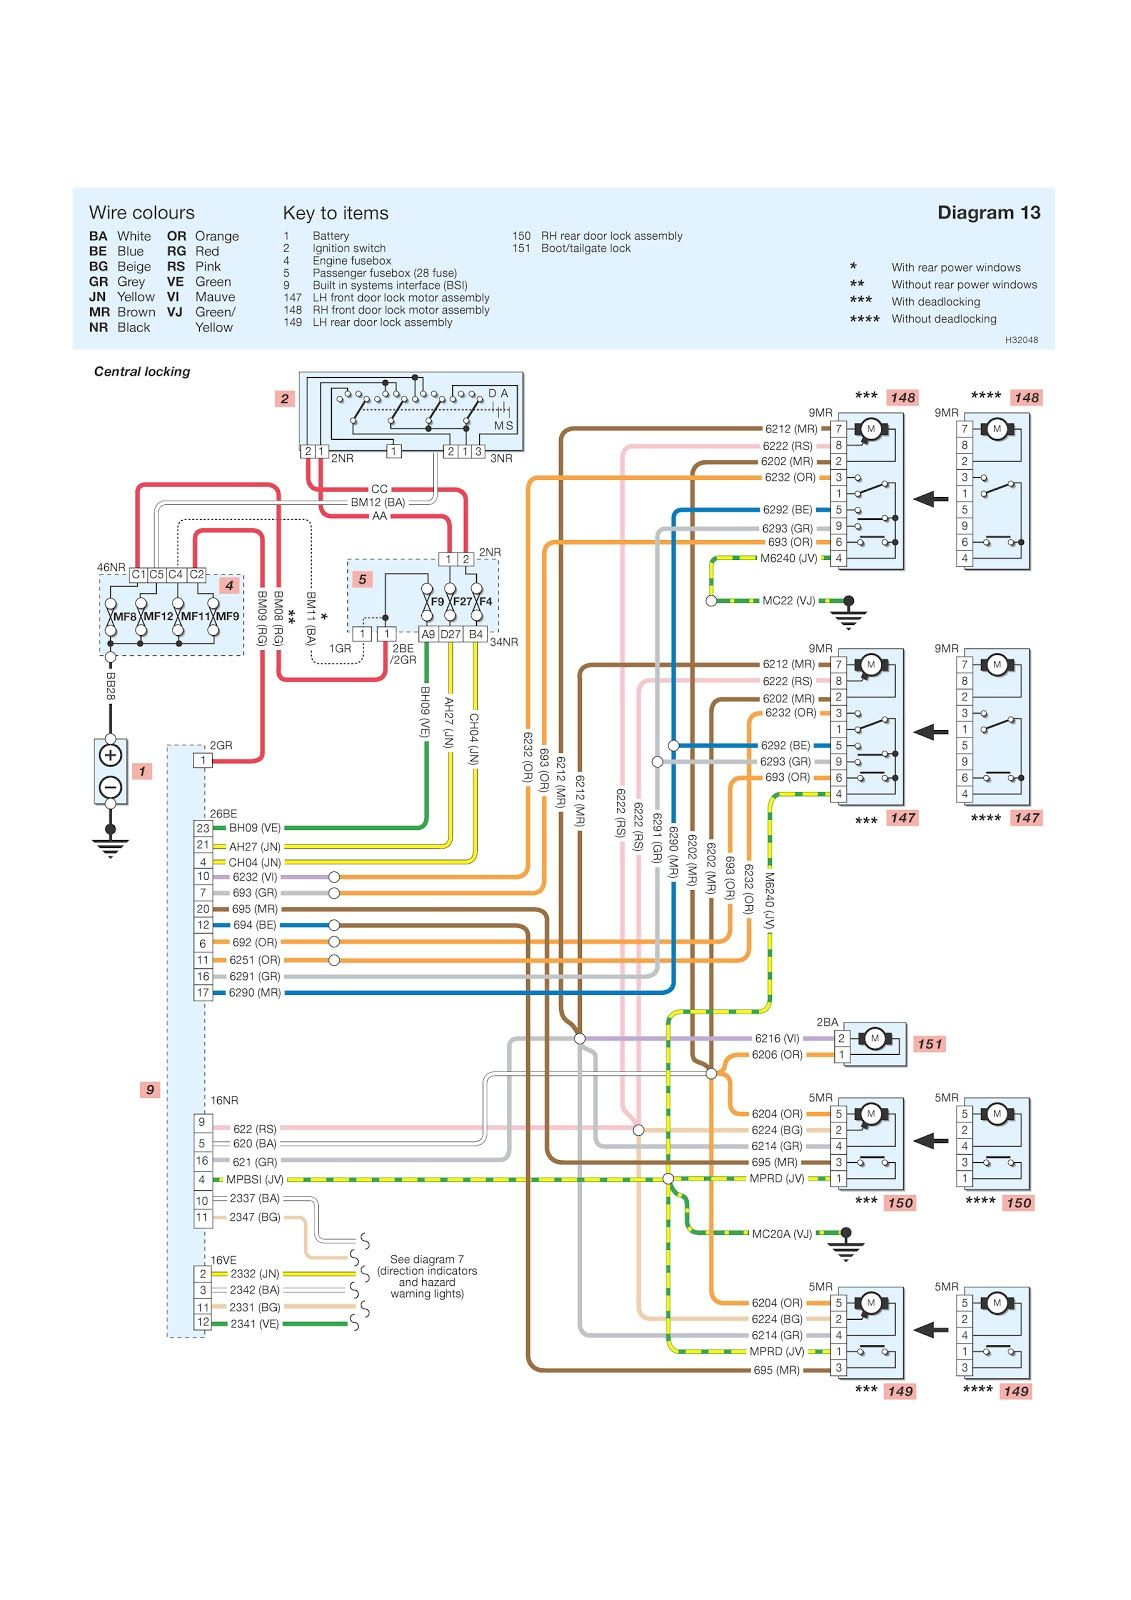 peugeot 306 wiring diagram central locking dn 5973  peugeot 307 central locking wiring diagram wiring diagram  peugeot 307 central locking wiring